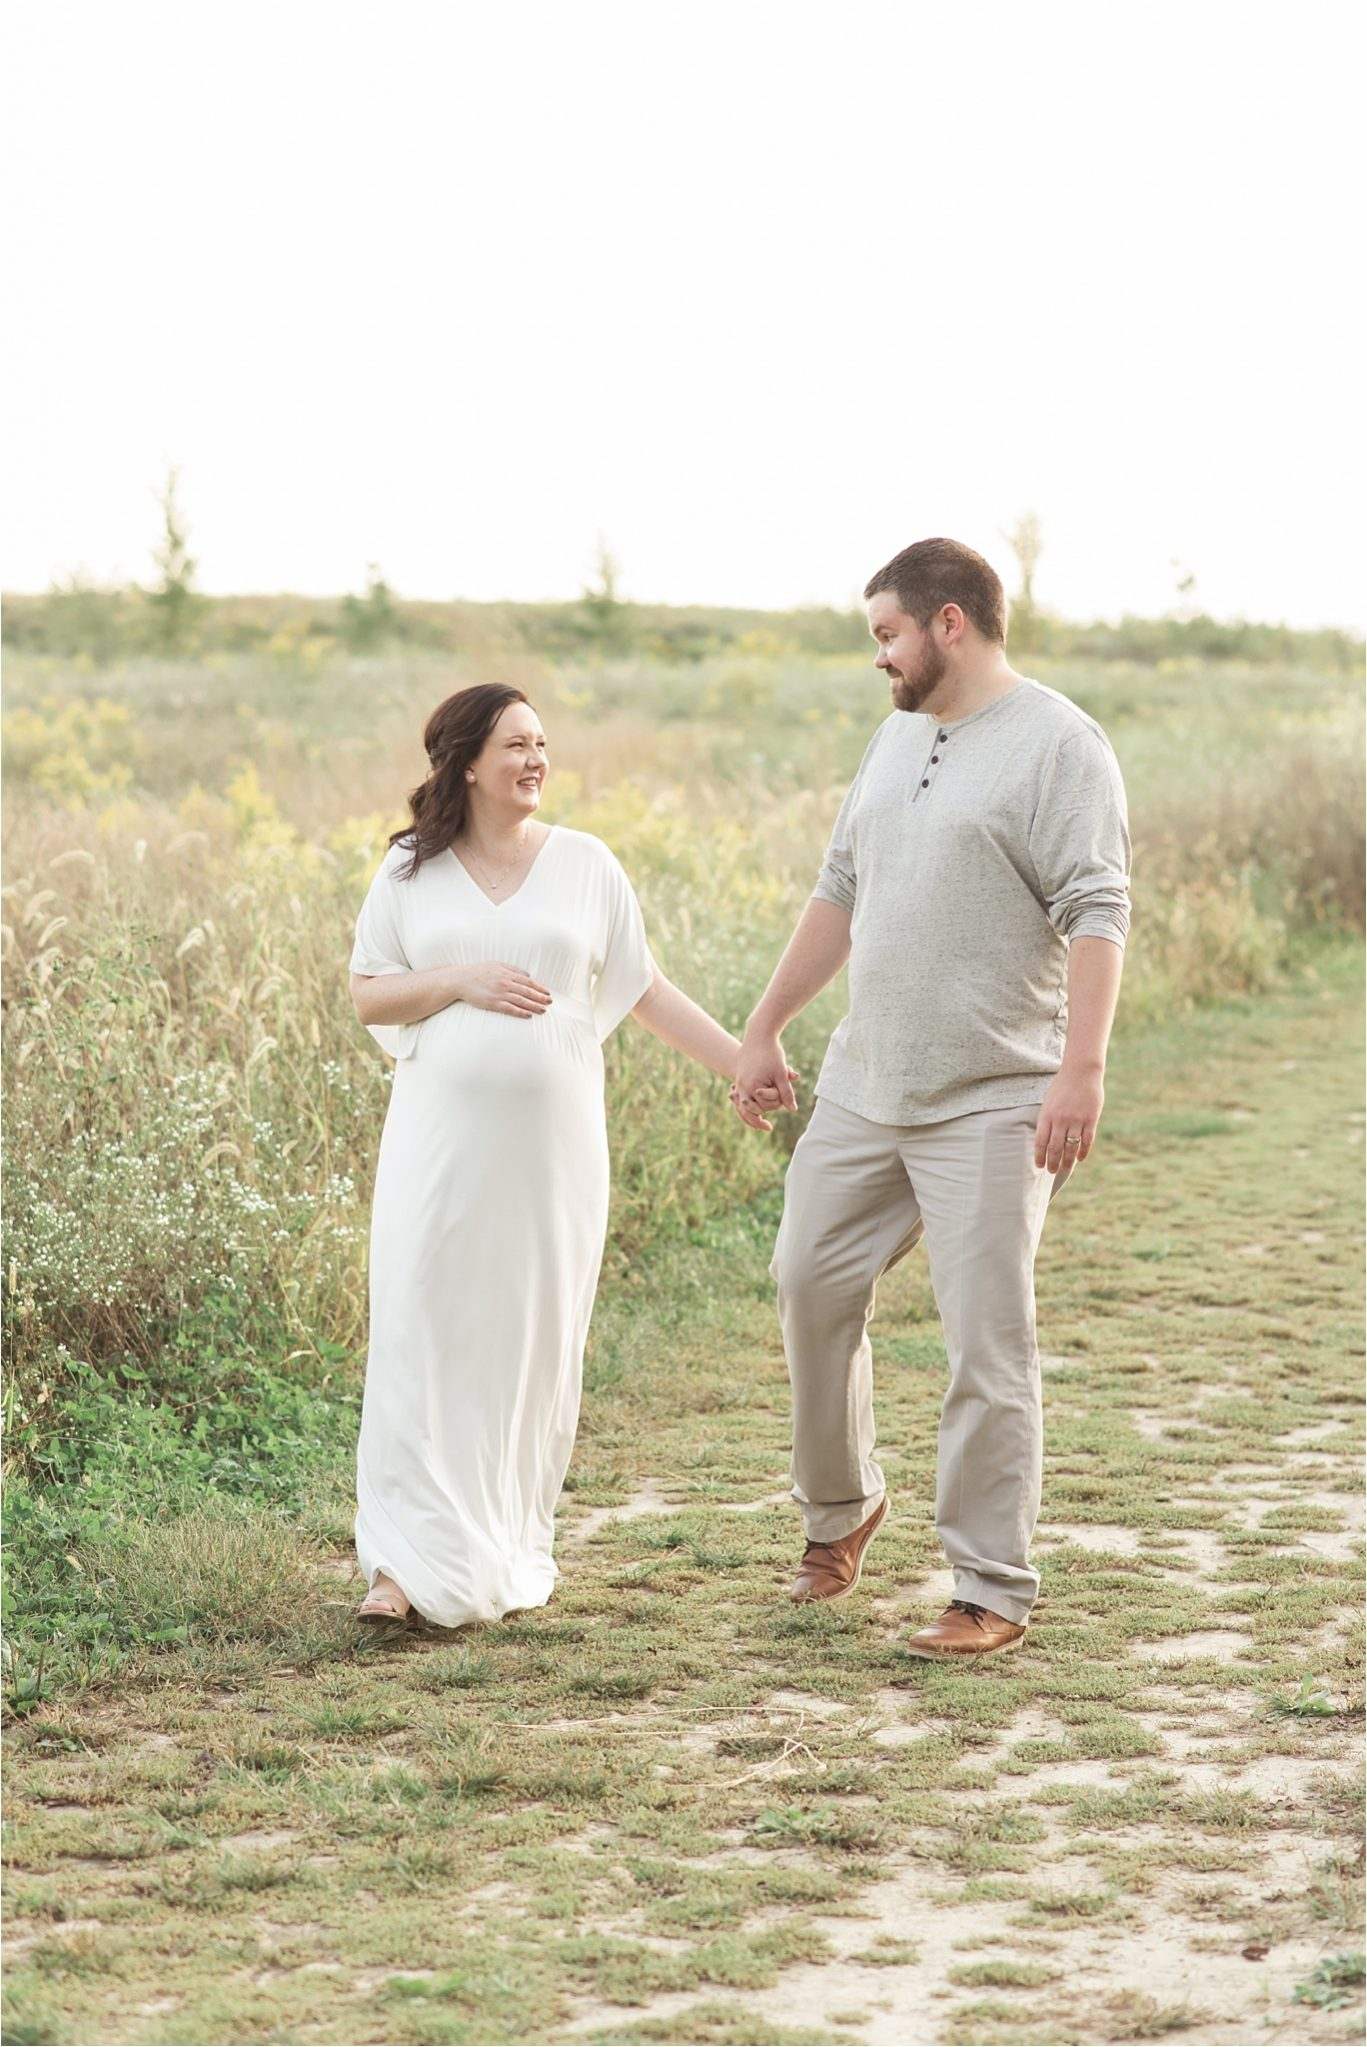 outdoor maternity session in indianapolis at sunset with natural light by lindsay konopa photography